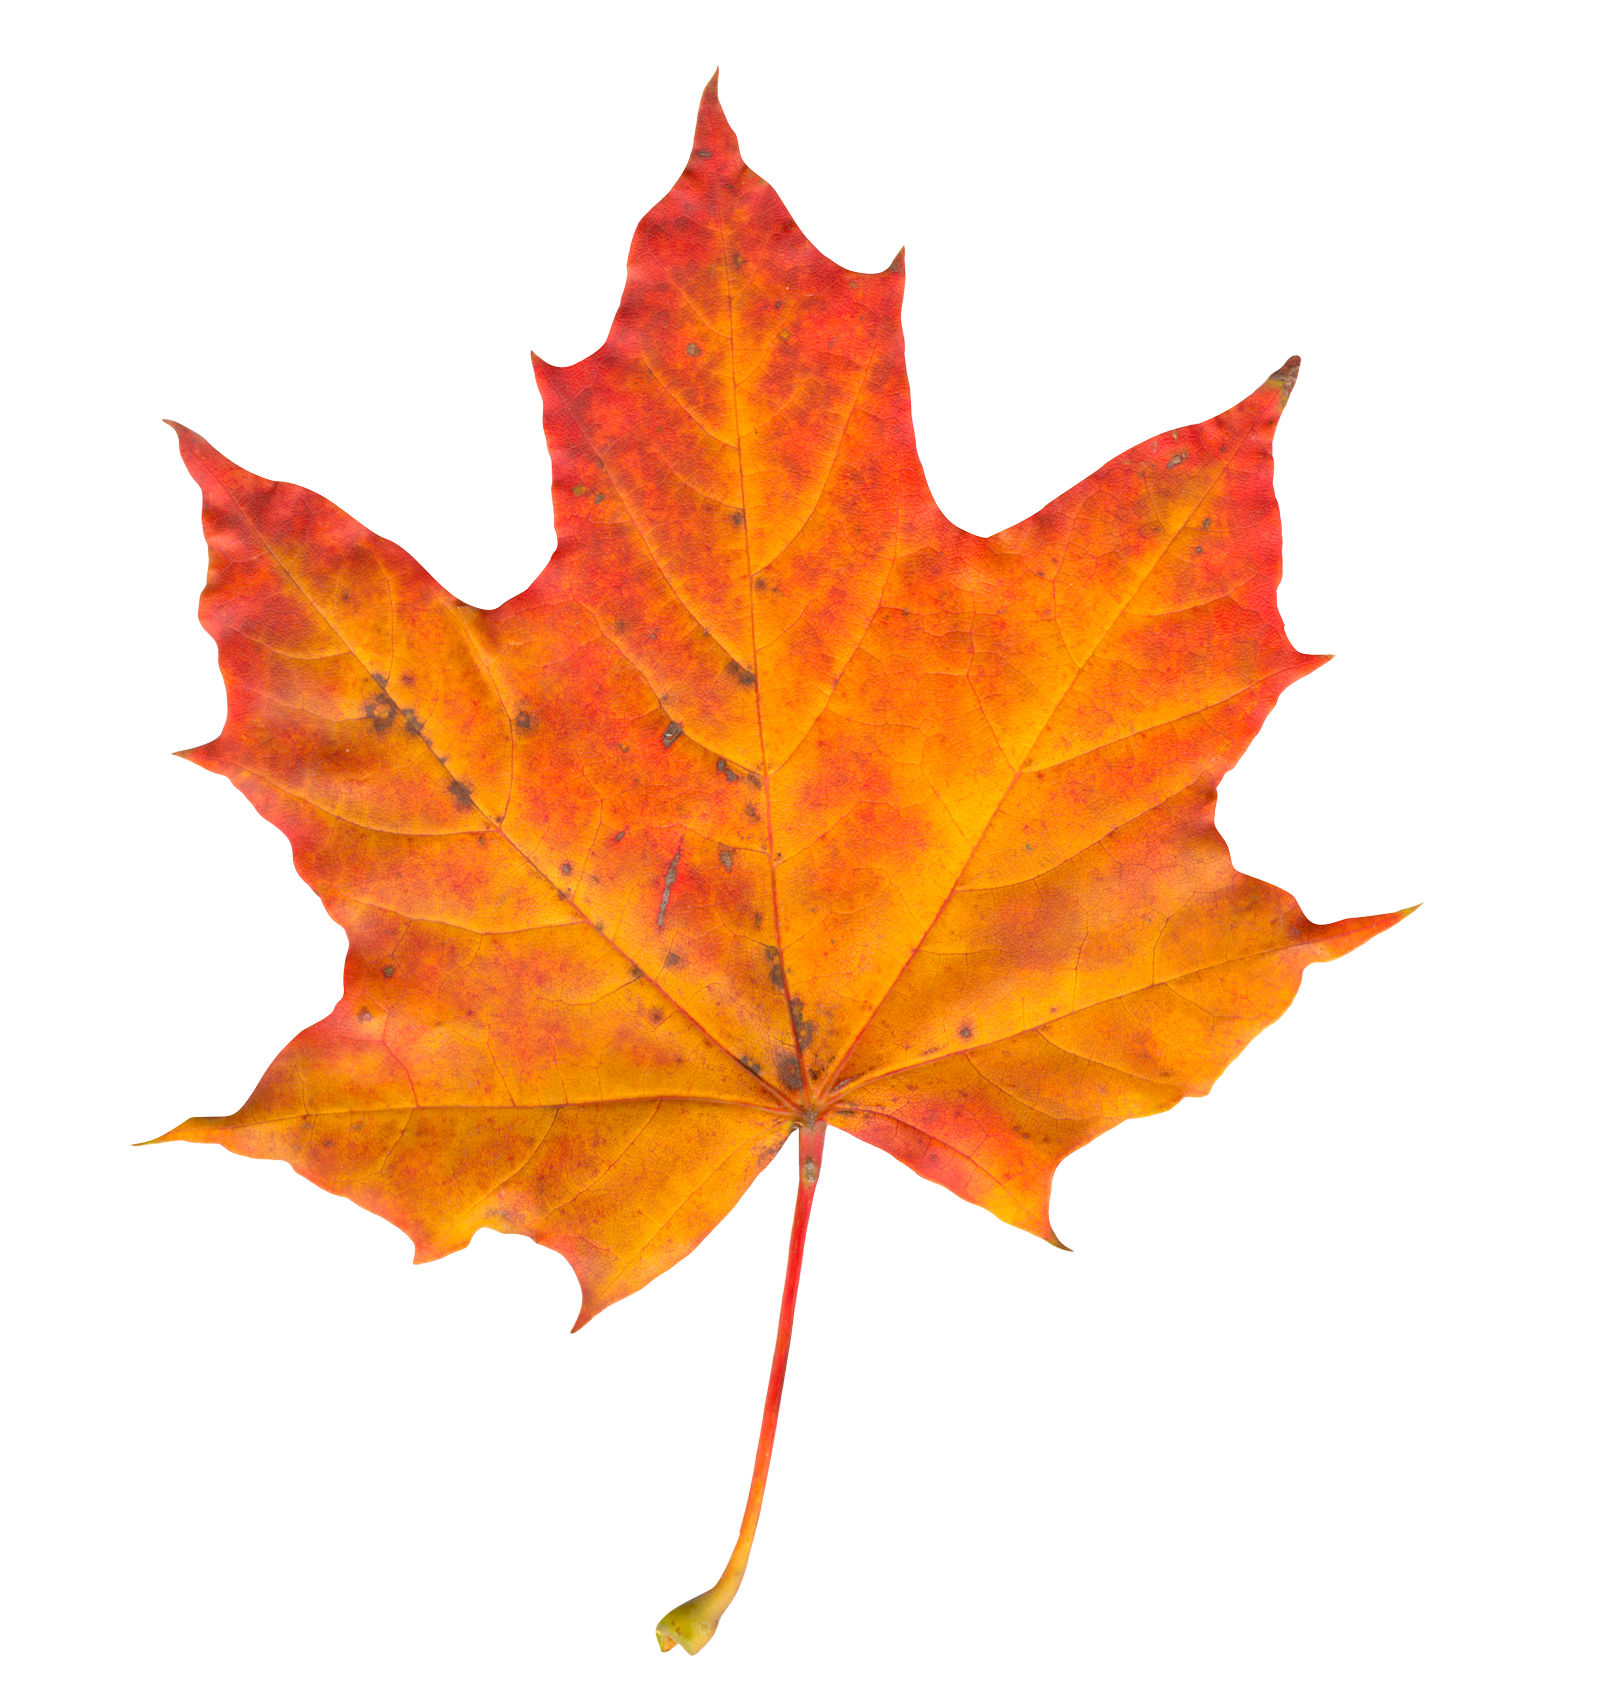 Autumn Leaf PNG Transparent Image - Autumn Leaves HD PNG